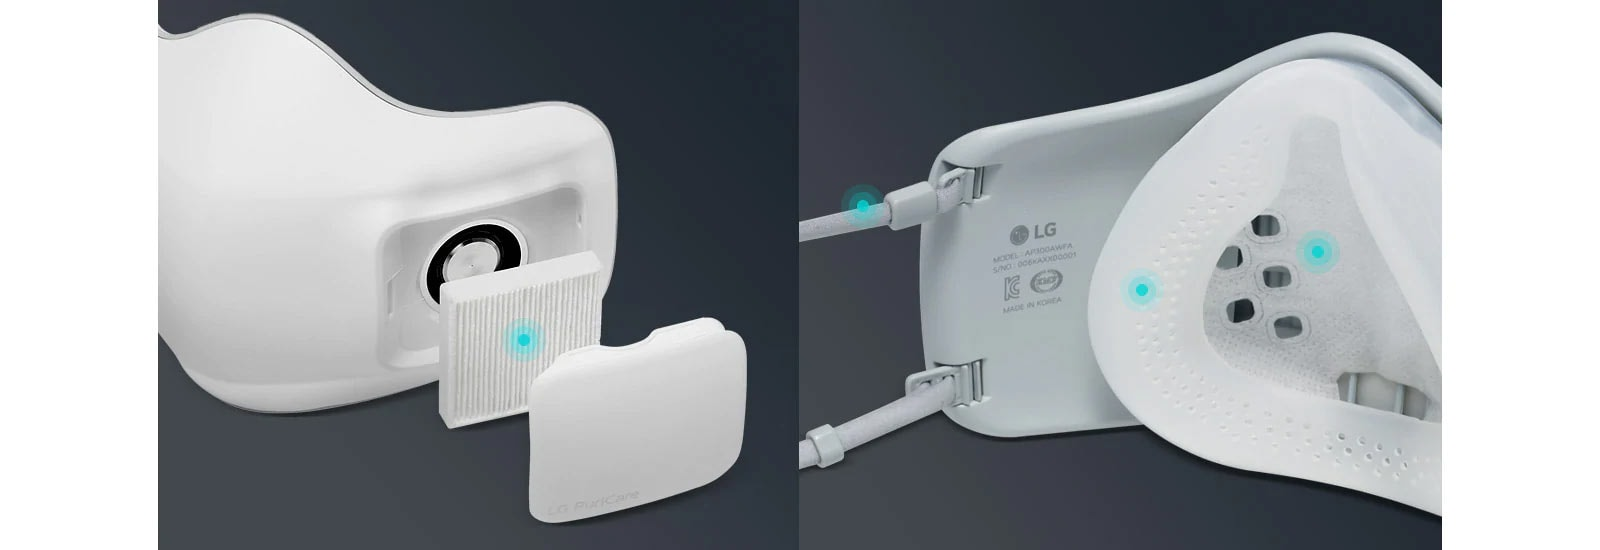 The first image shows the exterior of the face mask with the filter and cap exposed. A blue dot on the filter indicates this is disposable and can be replaced. The second image shows the interior of the mask and blue dots on the face pad and mask ear straps indicate they are washable.